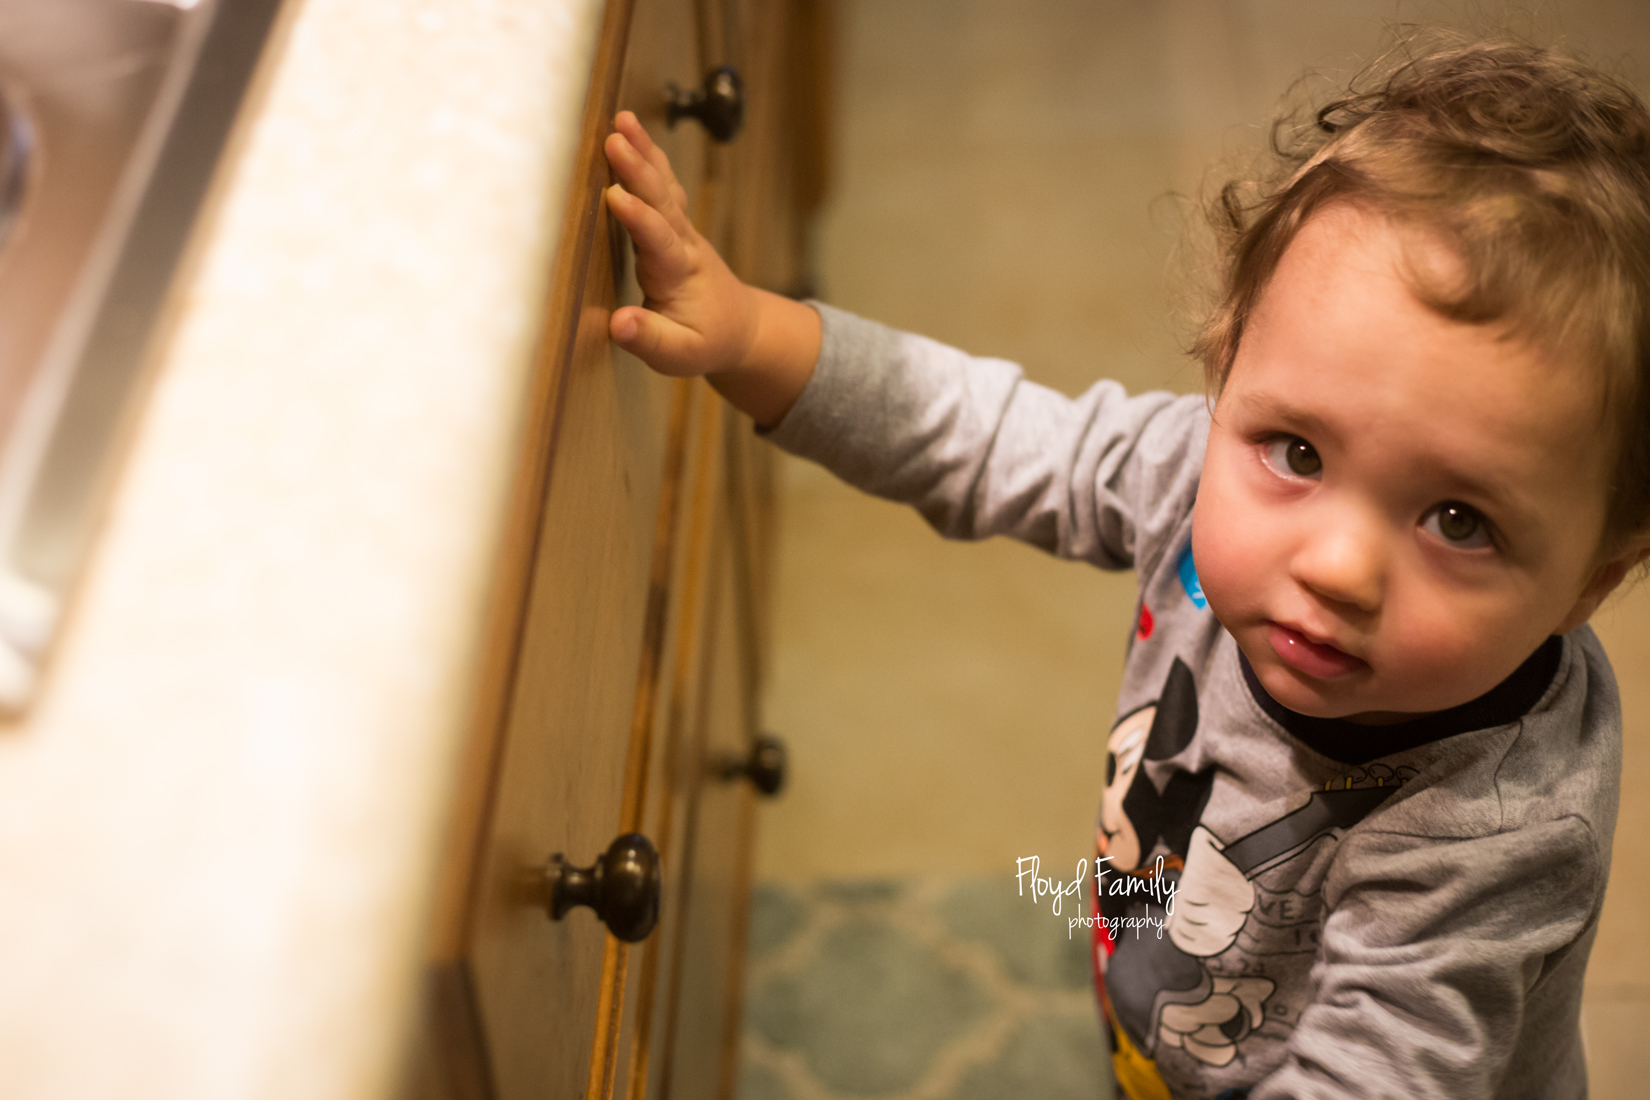 toddler looking up at camera while in the kitchen